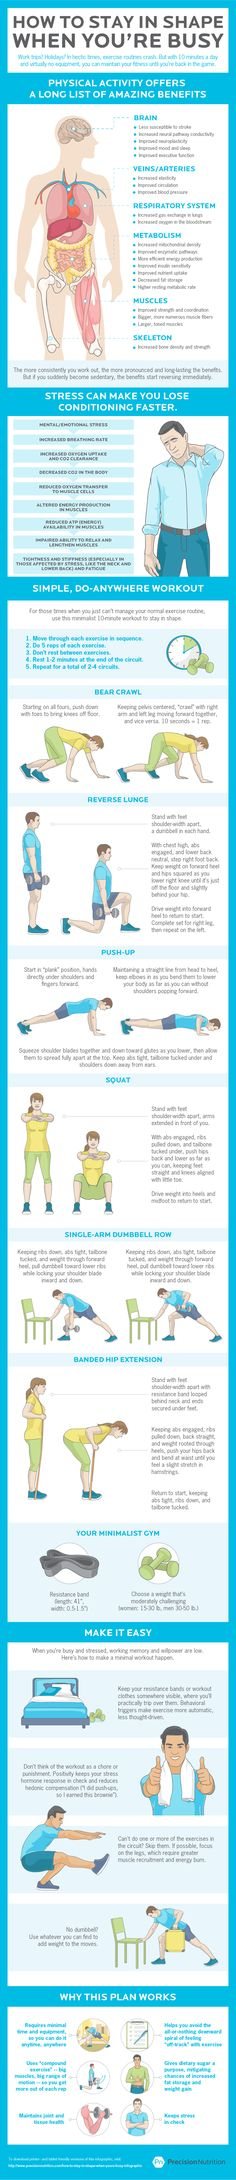 2016_02_How to stay in shape when you're busy_1-8